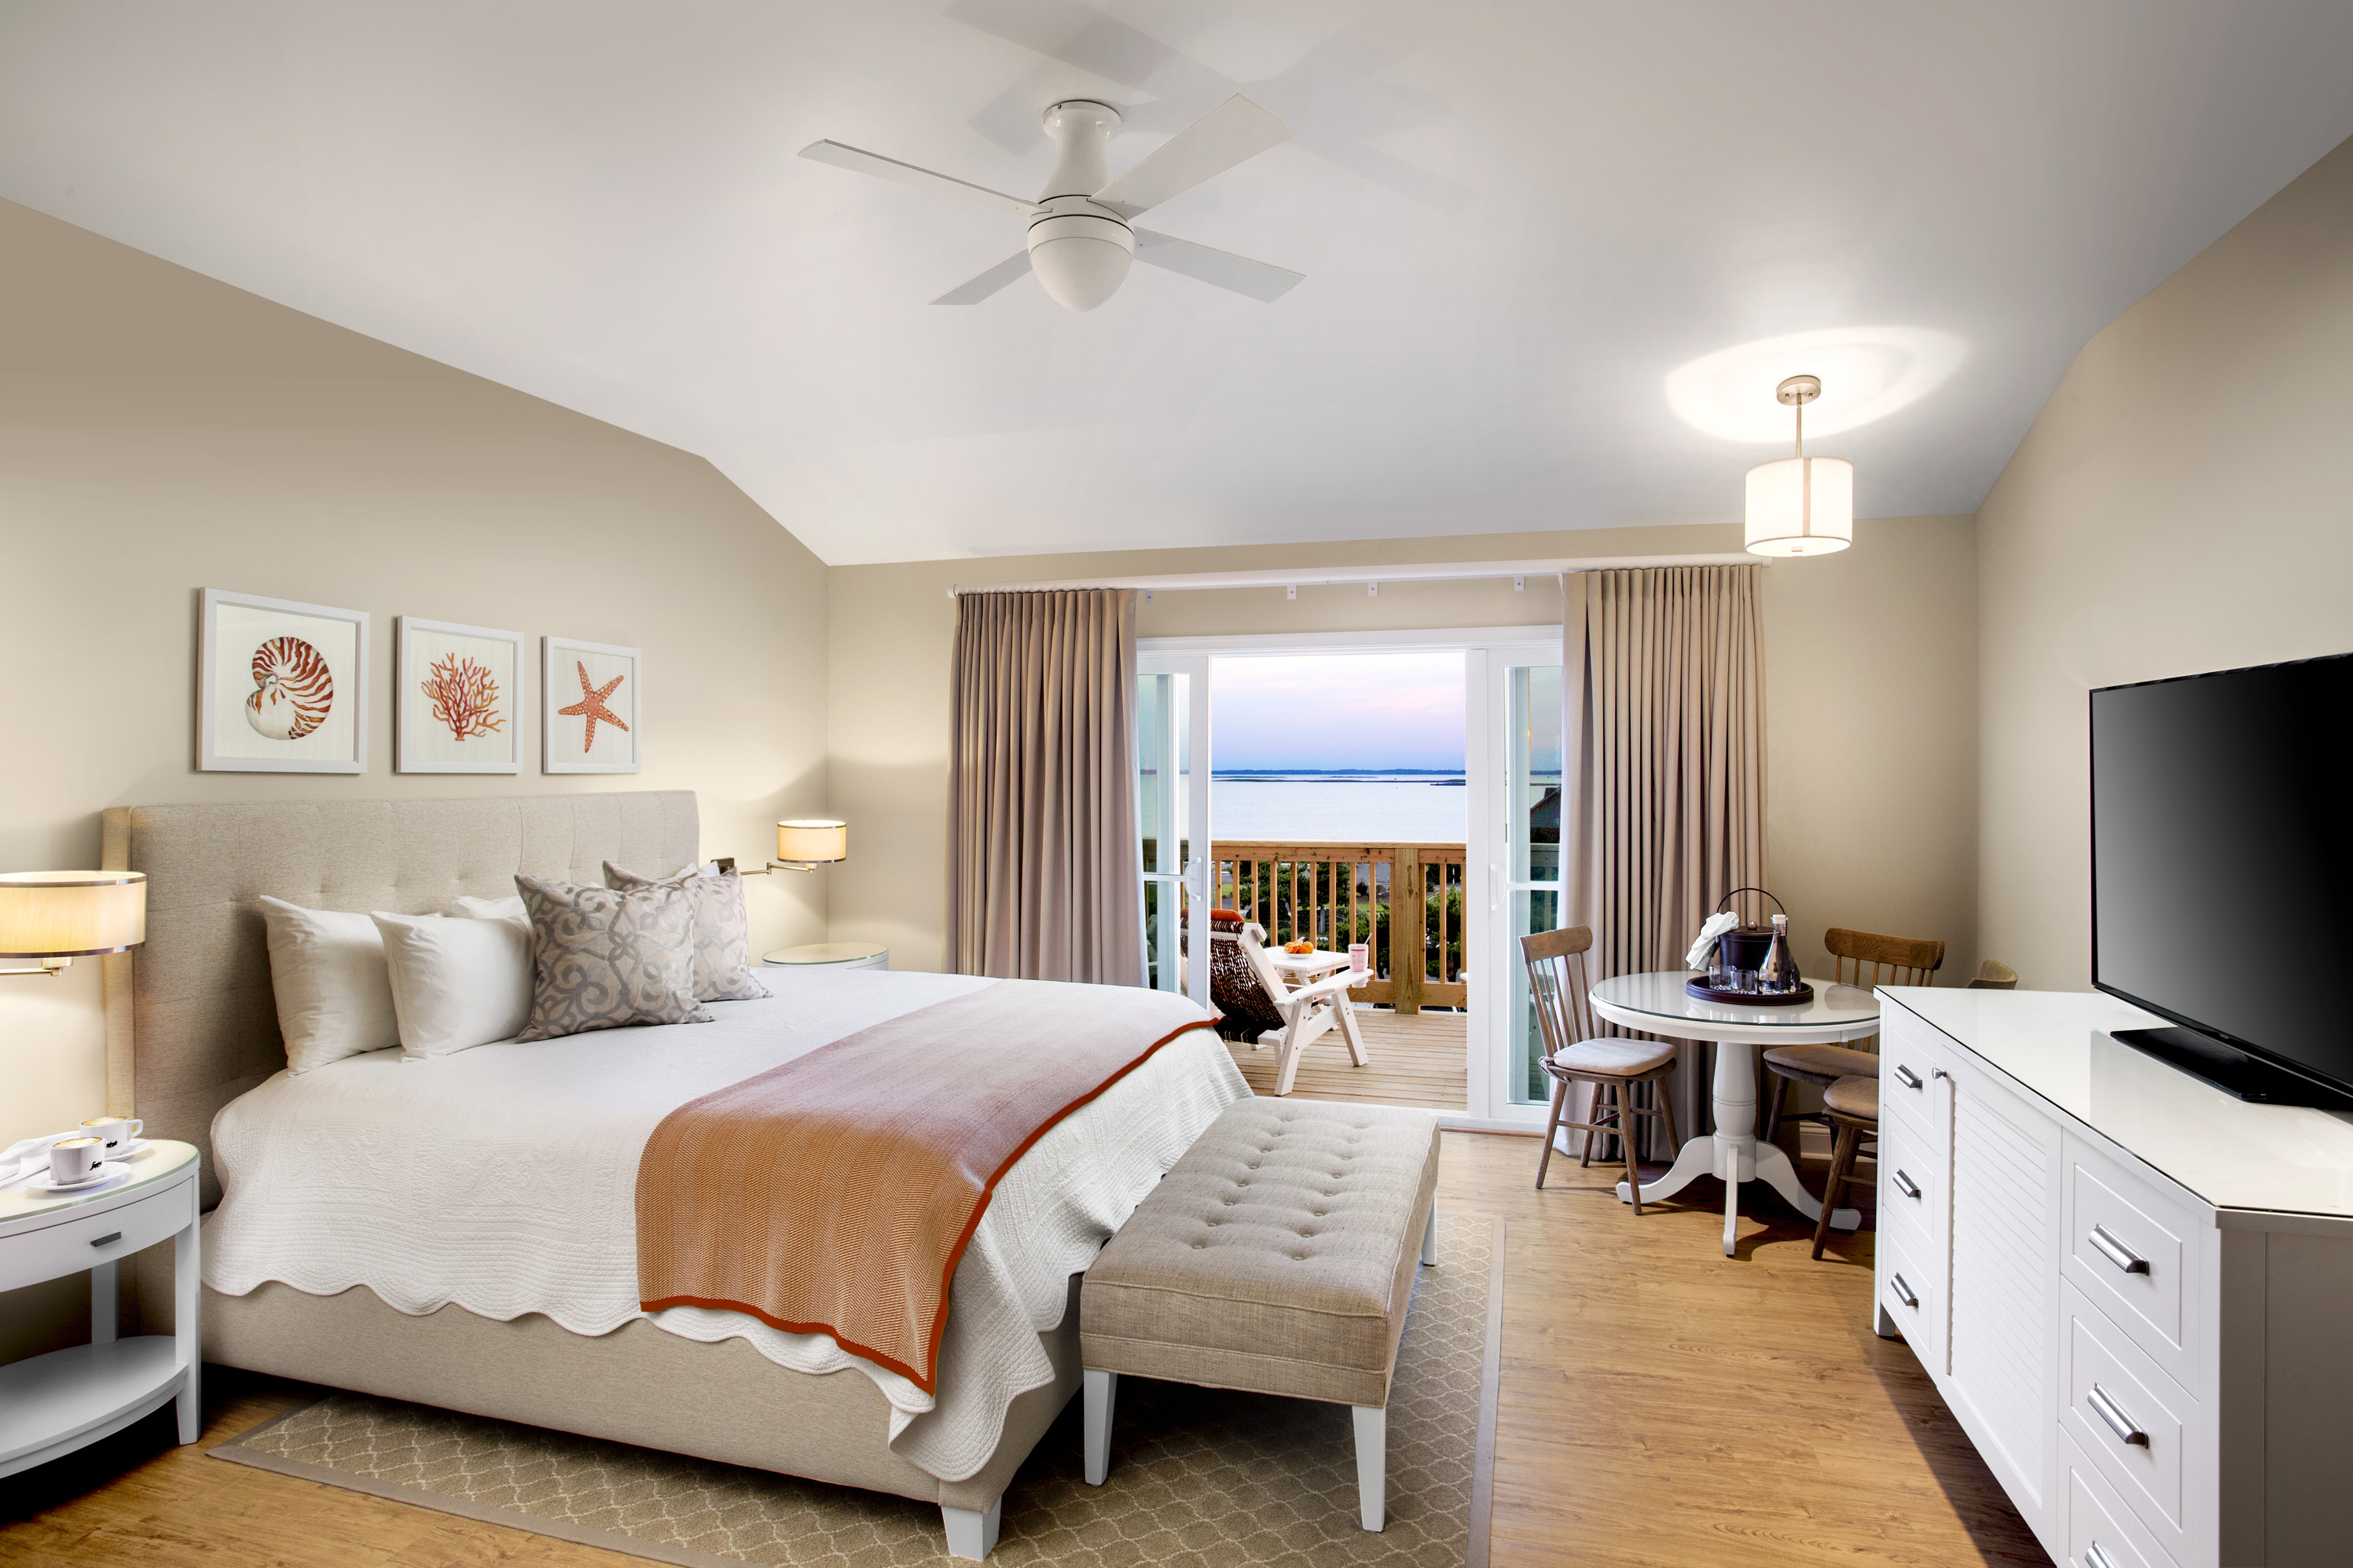 2015Beach House Suite Bedroom Room 441-s - Copy